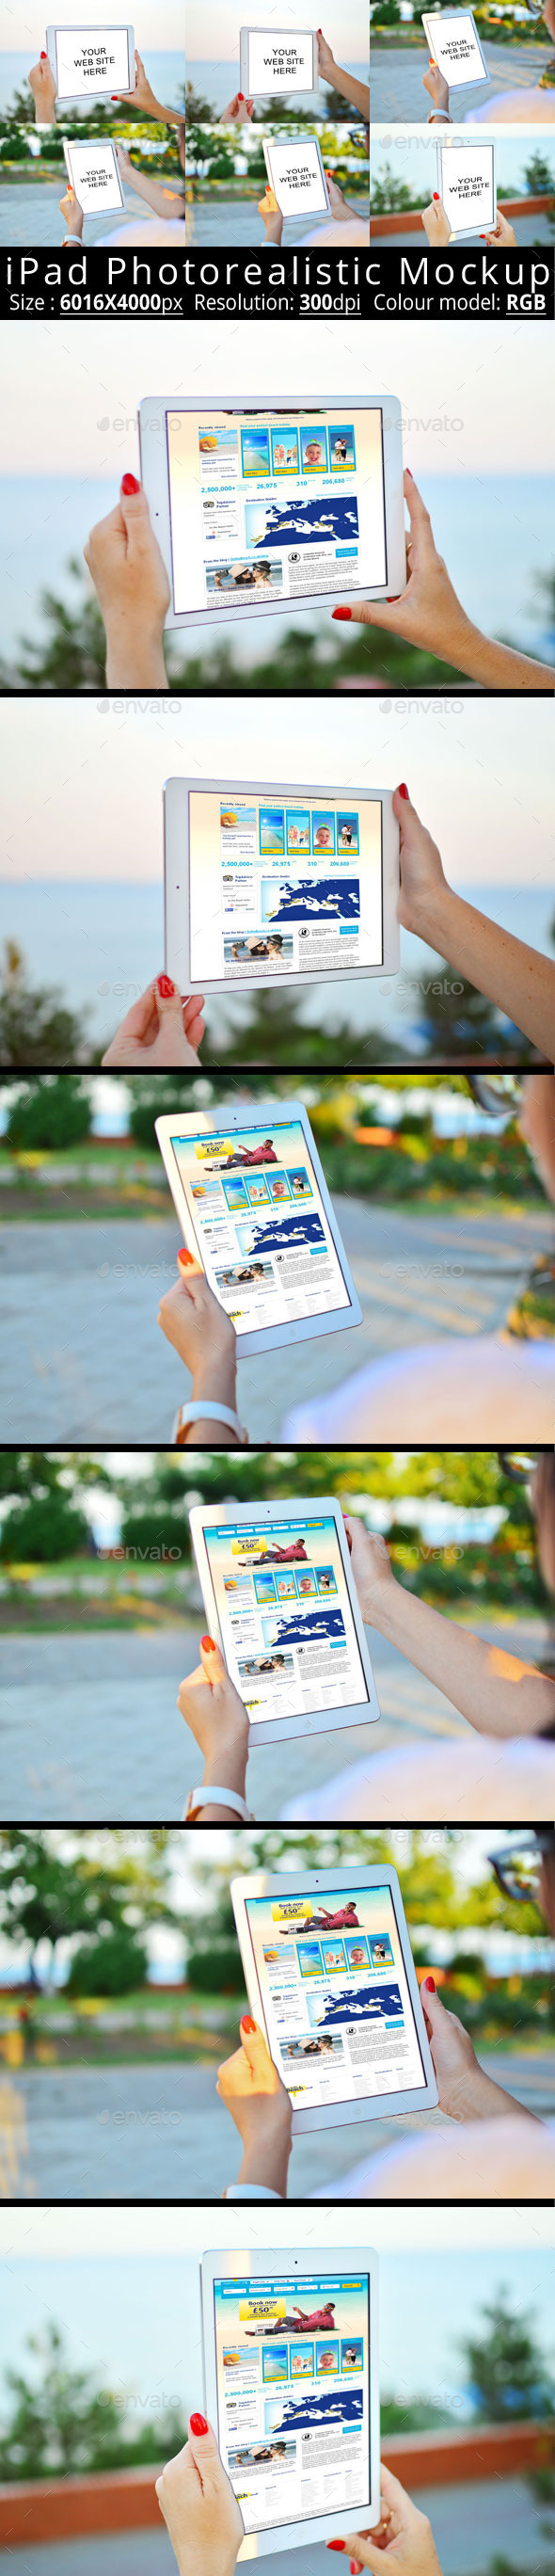 GraphicRiver iPad Photorealistic Mock-Up 11786533